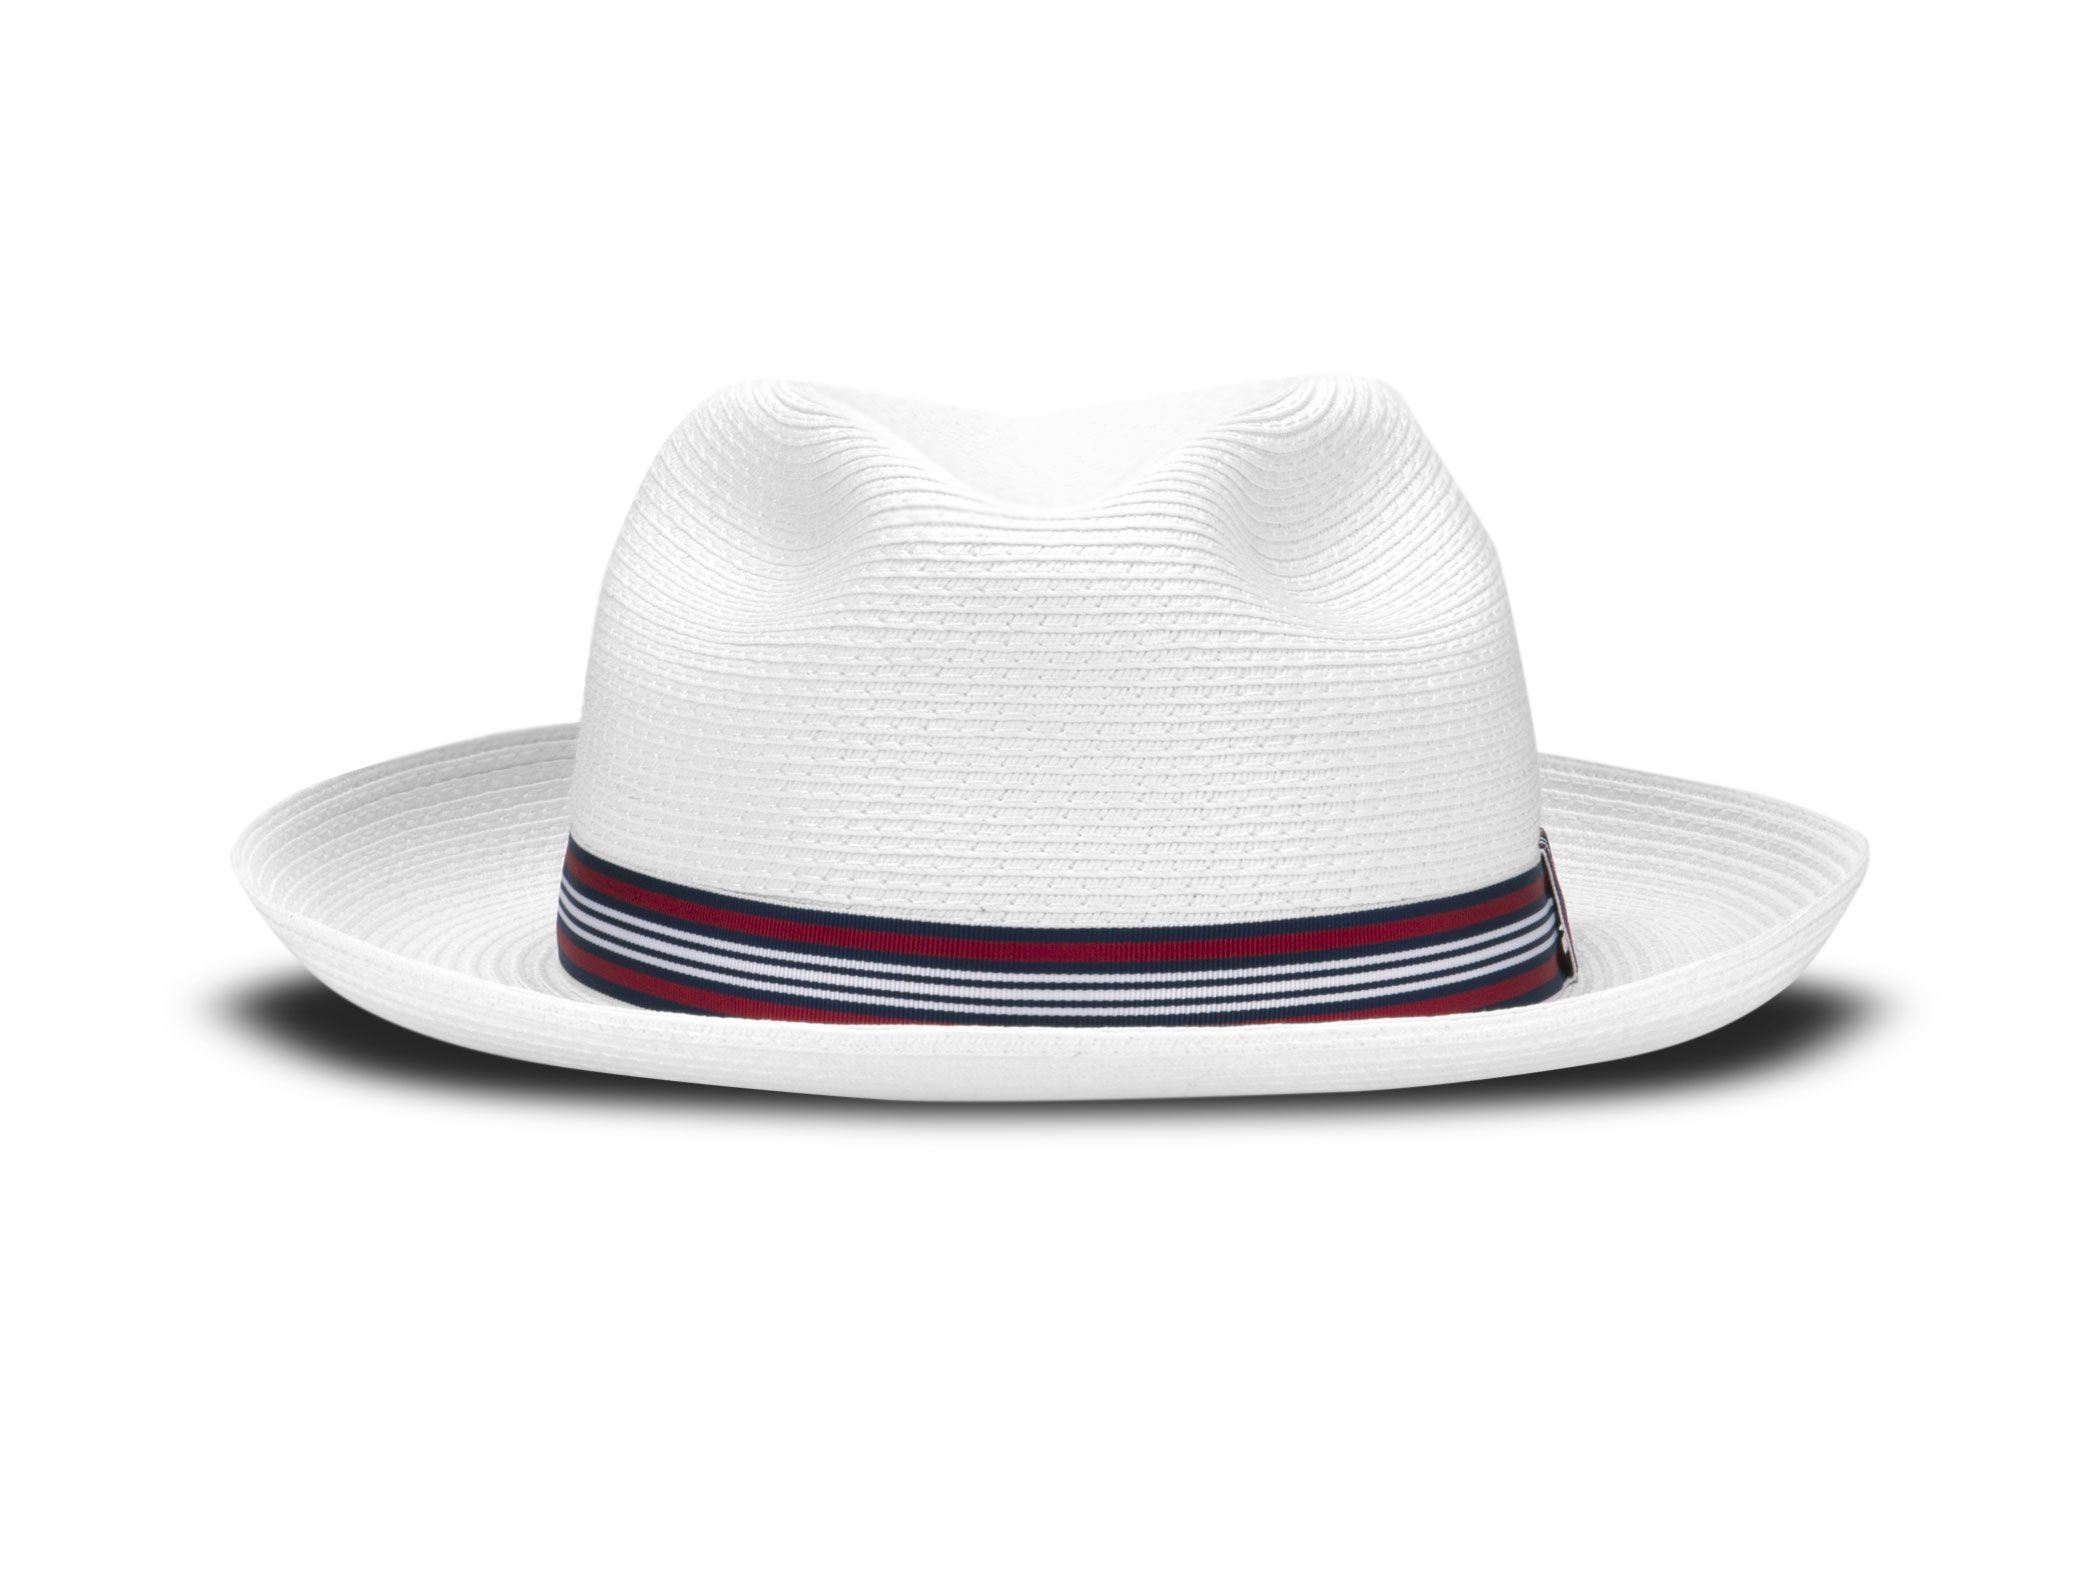 Tilley Endurables TOYO Fedora - White - L